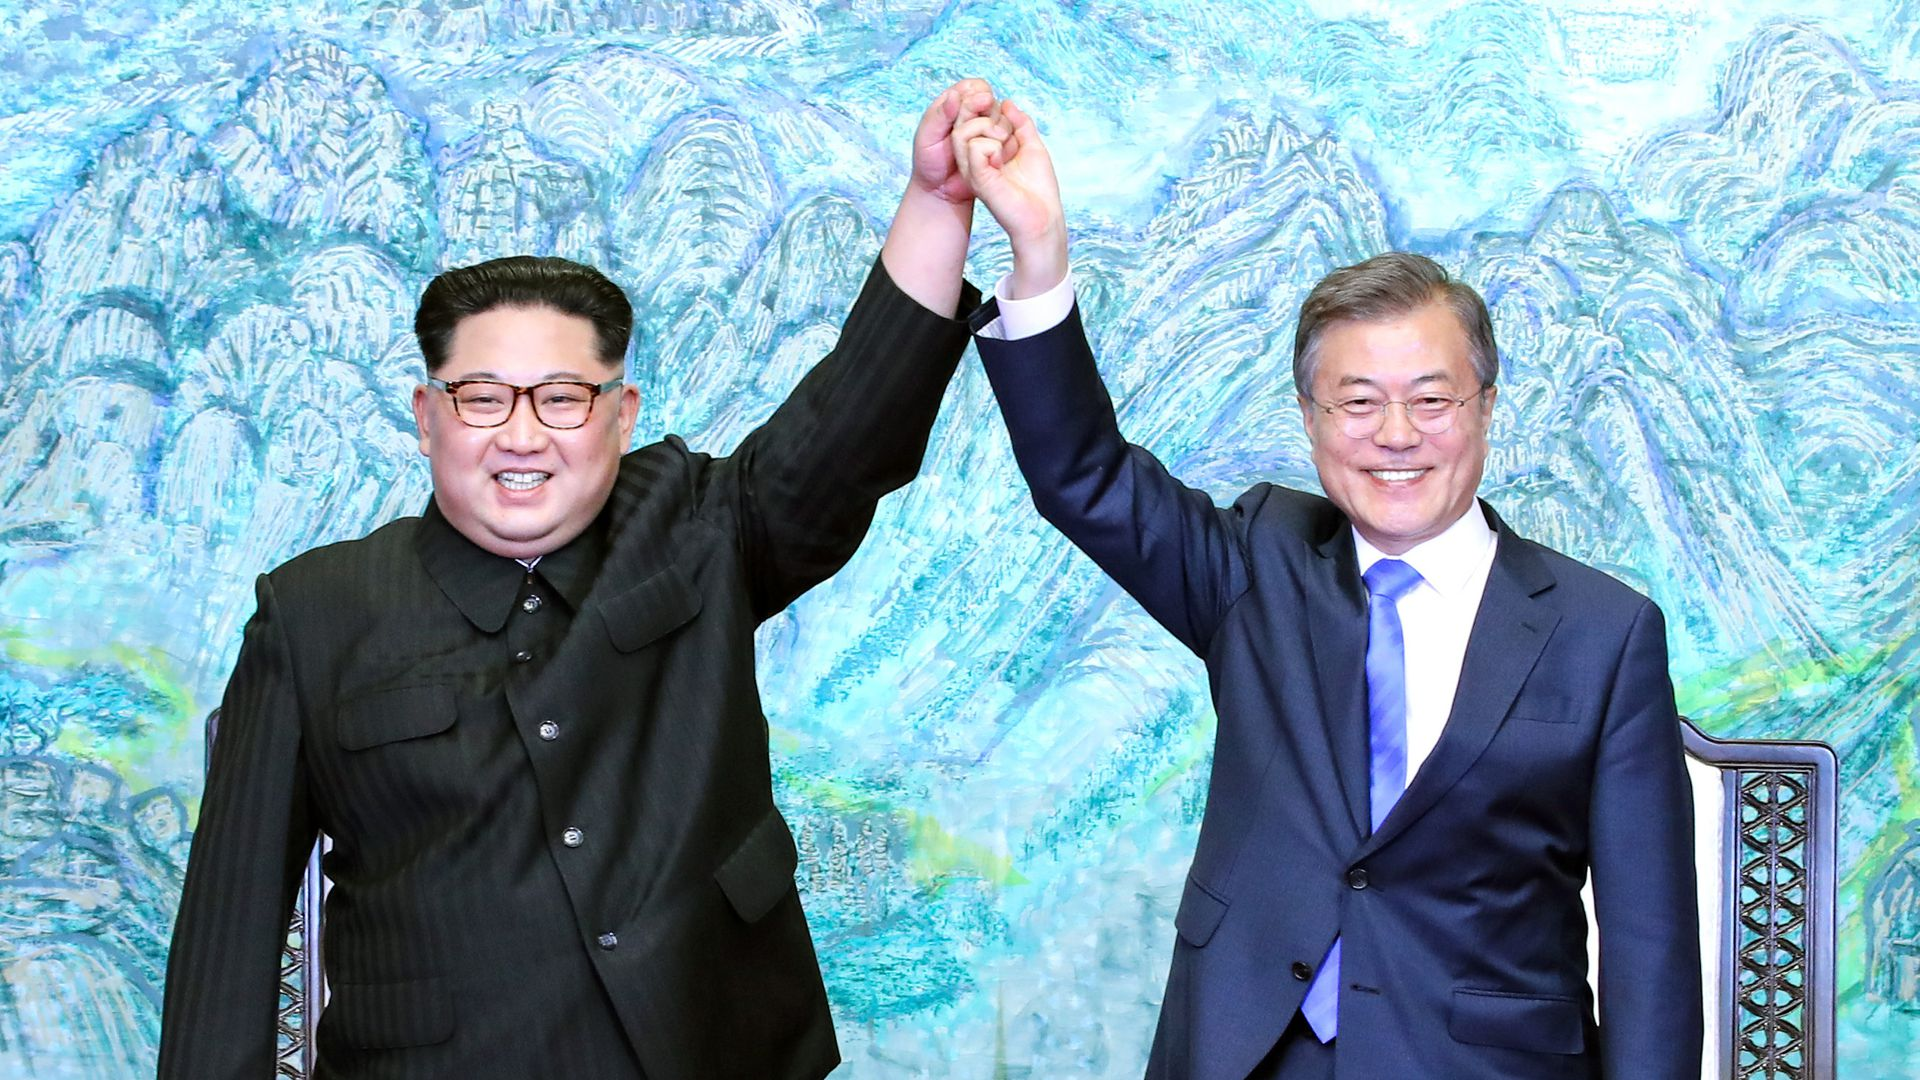 Kim Jong-un and Moon Jae-in at a summit in South Korea.